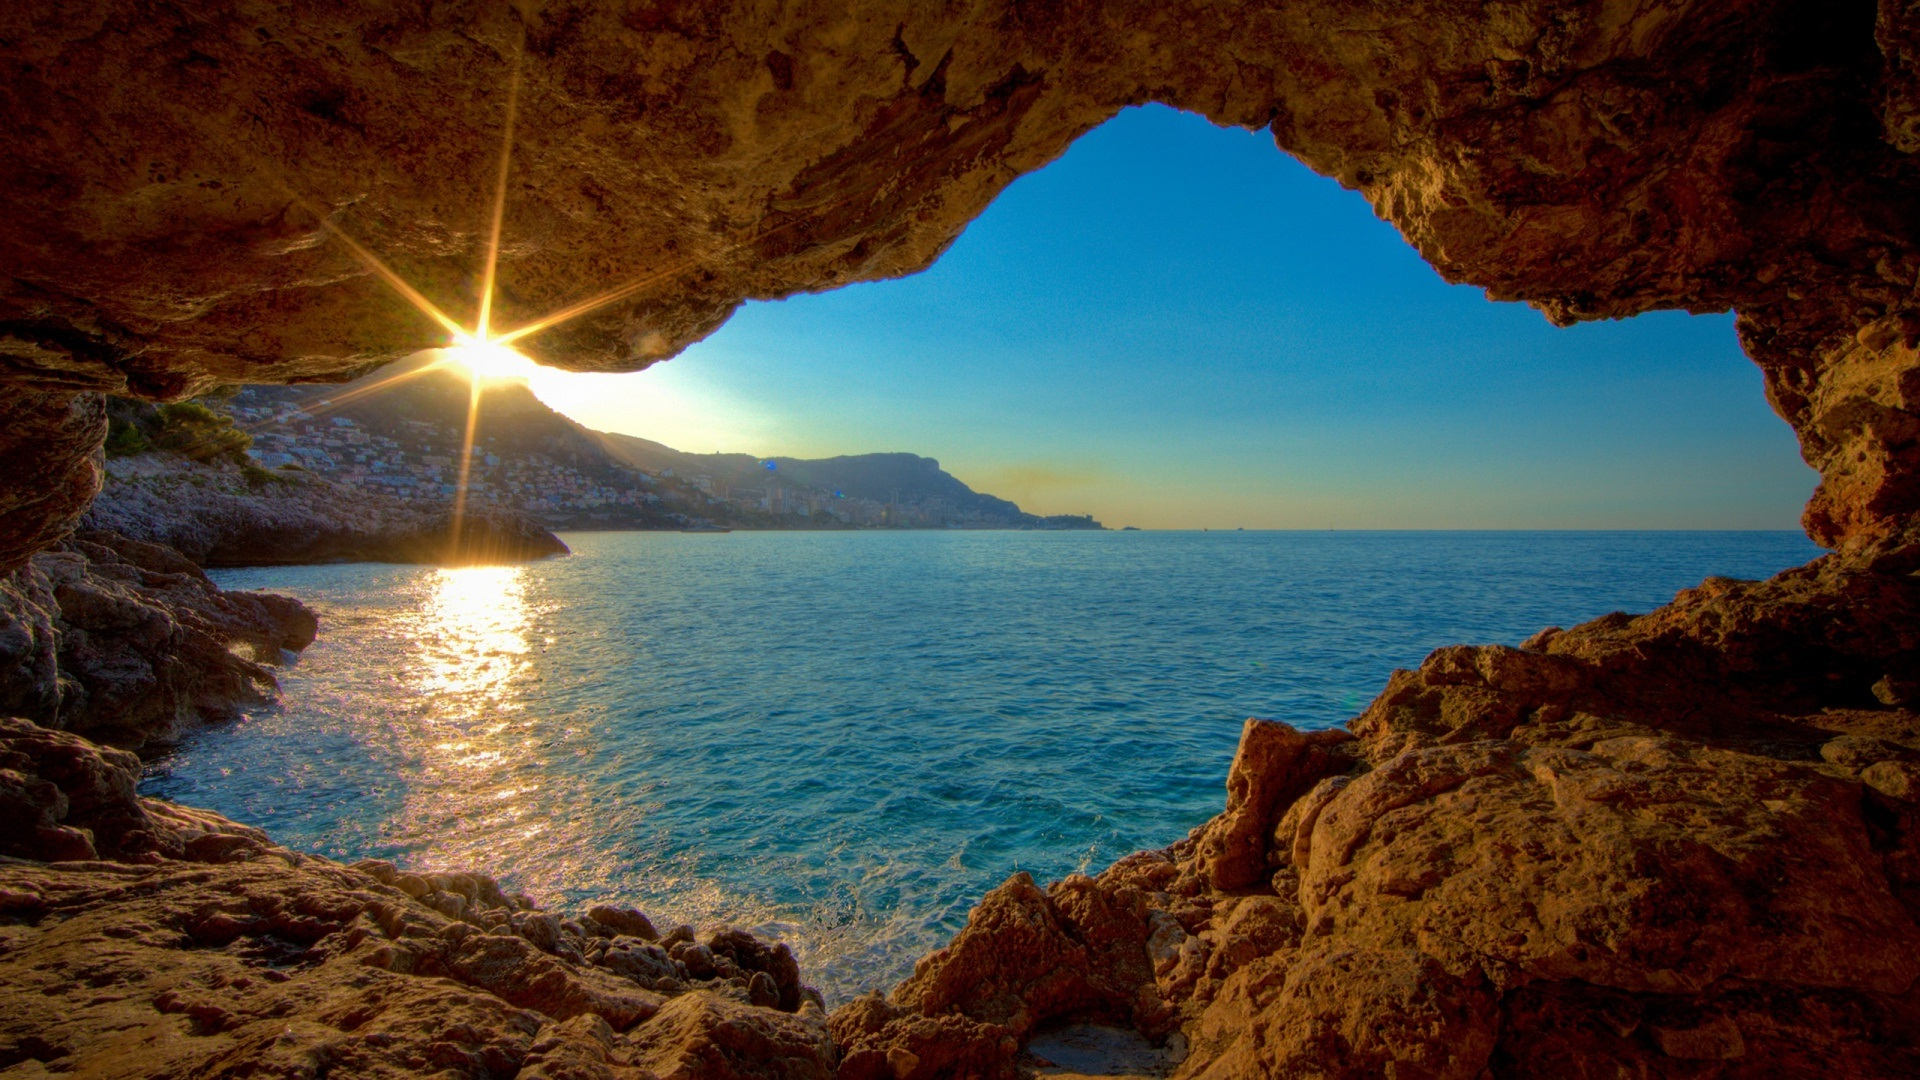 Hd wallpaper cave - 32 Awesome Hd Cave Wallpapers